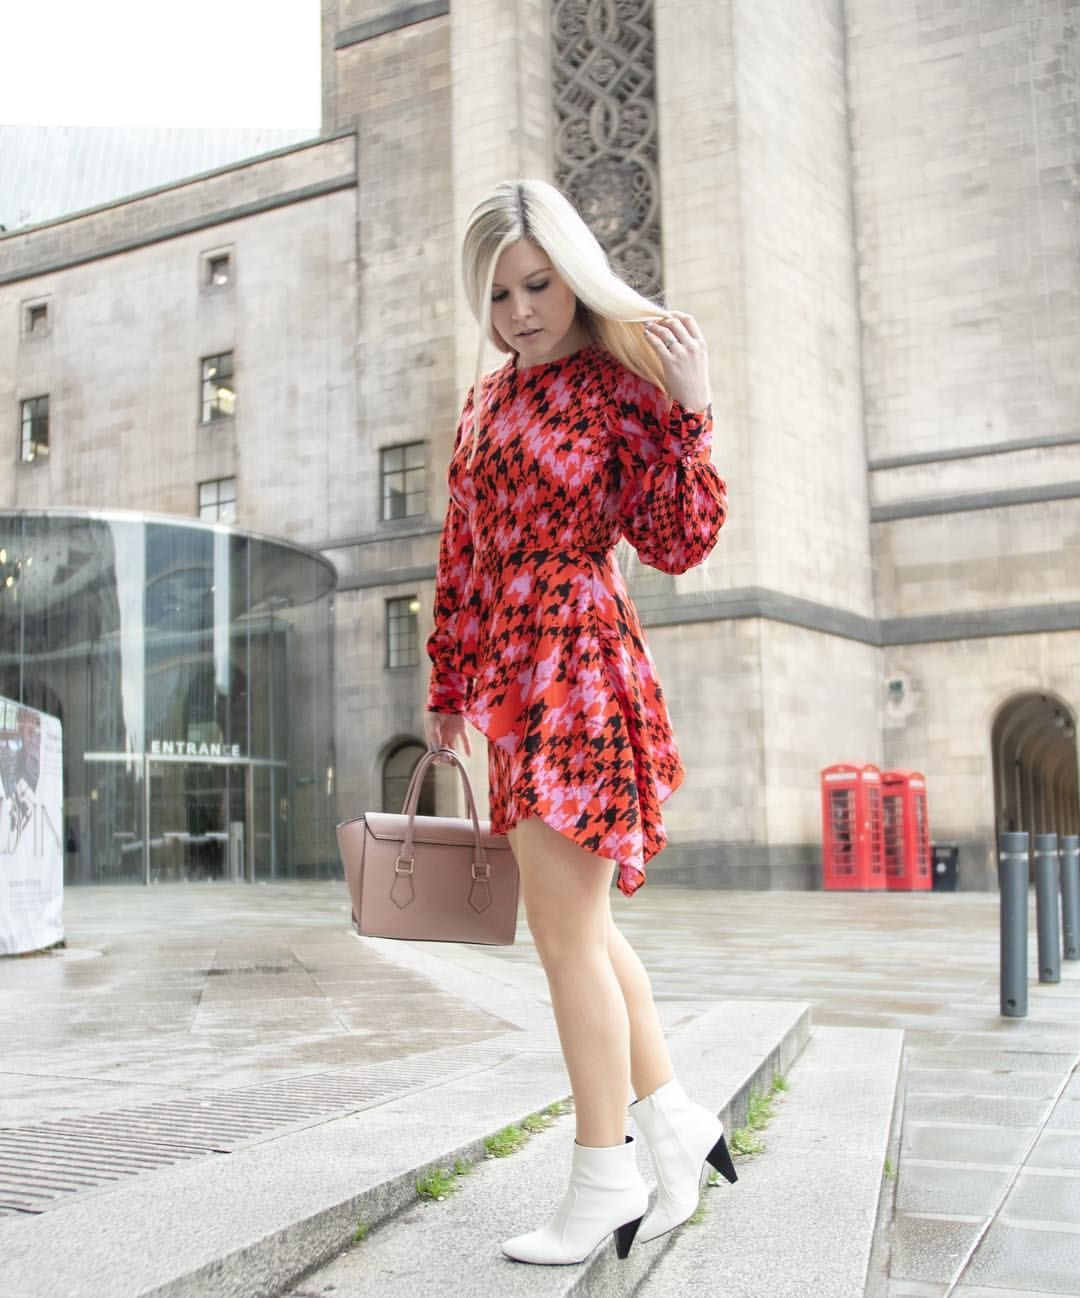 d8da6f21d5c0 An alternative to the usual Christmas Party dress - try colour clashes, a  bold print and white boots! #christmasparty #partyoutfit